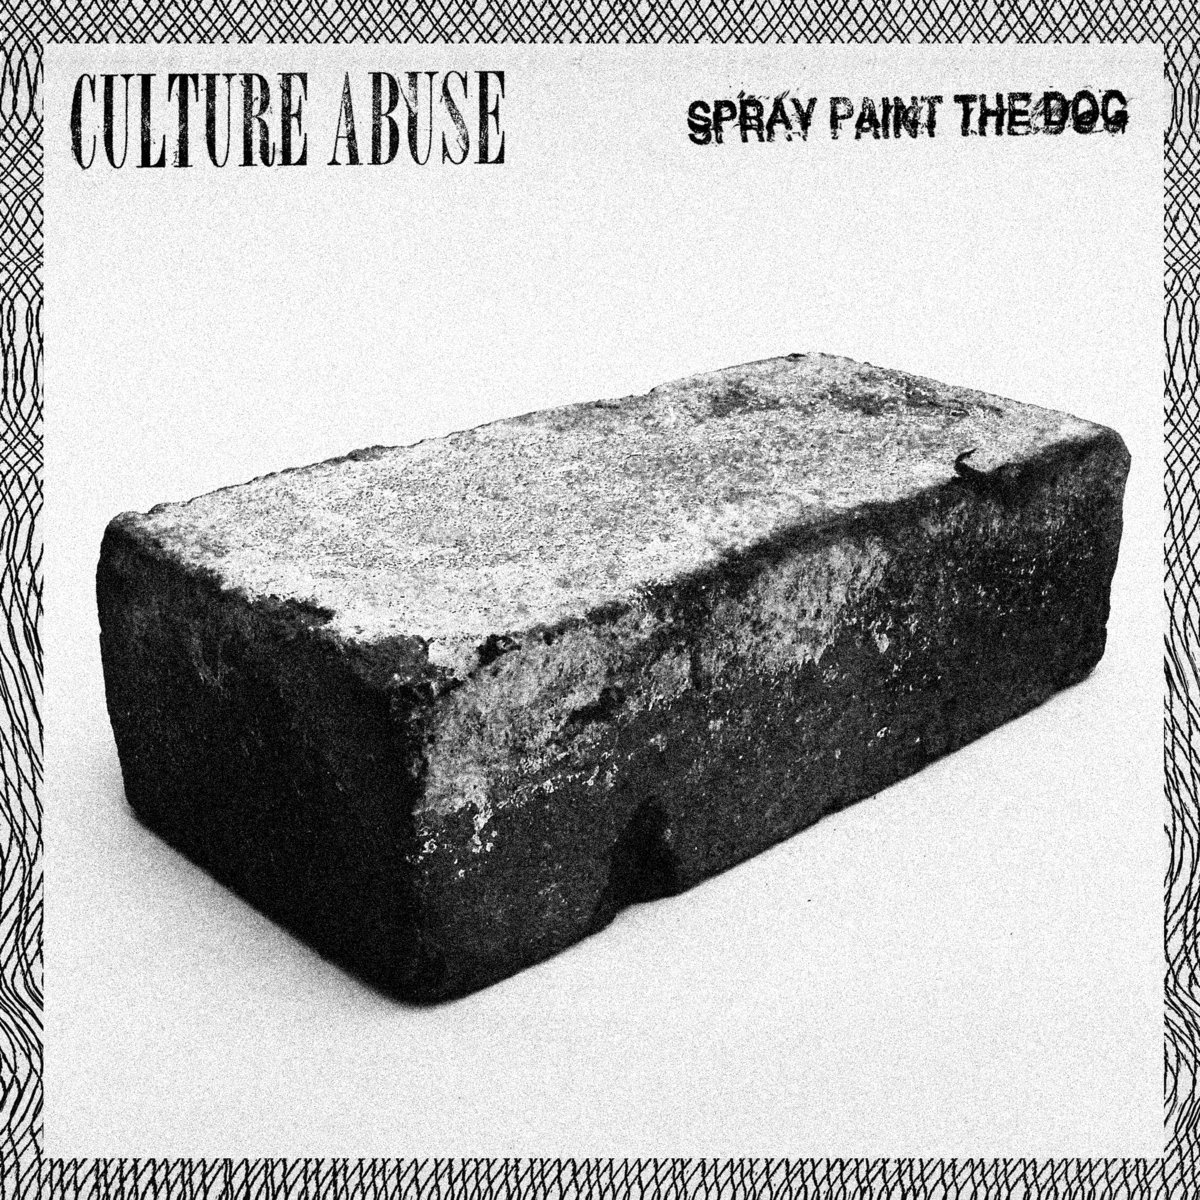 Culture Abuse - Spray Paint The Dog 7